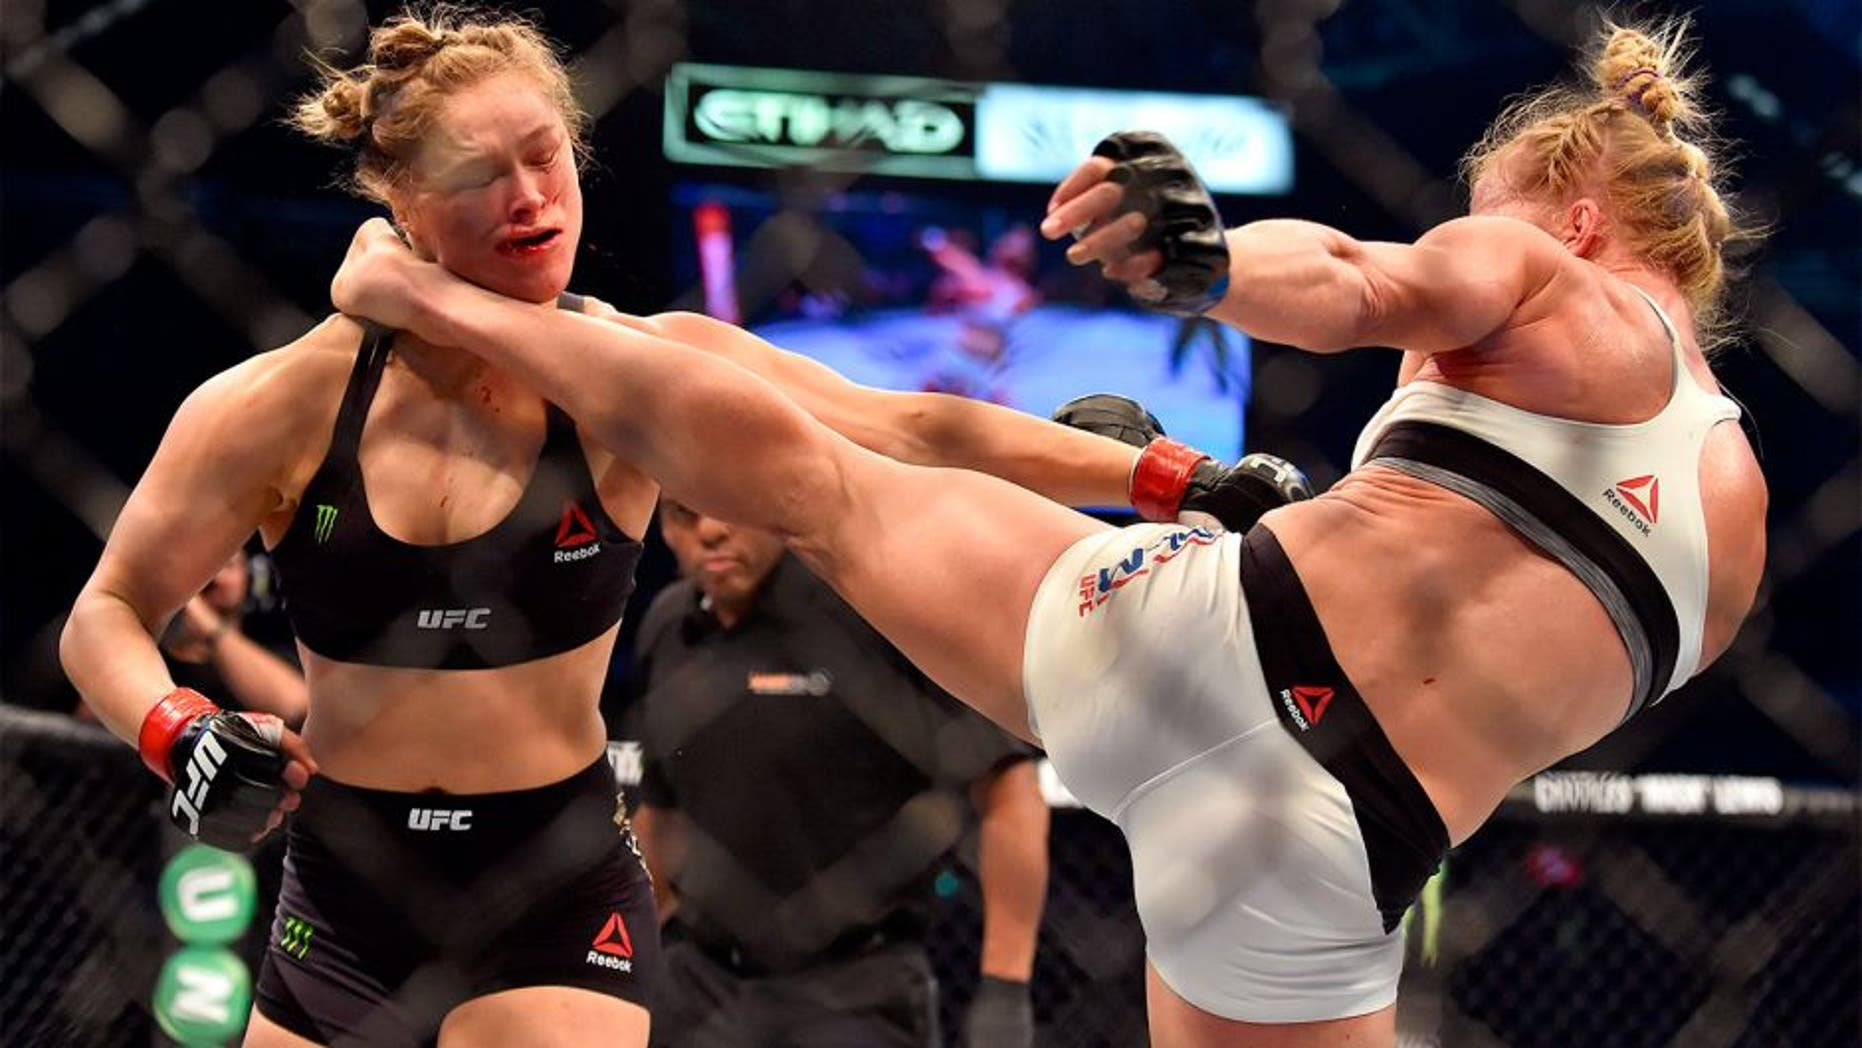 Holly Holm of the US (R) lands a kick to the neck to knock out compatriot Ronda Rousey and win the UFC title fight in Melbourne on November 15, 2015. RESTRICTED TO EDITORIAL USE NO ADVERTISING USE NO PROMOTIONAL USE NO MERCHANDISING USE. AFP PHOTO/Paul CROCK (Photo credit should read PAUL CROCK/AFP/Getty Images)